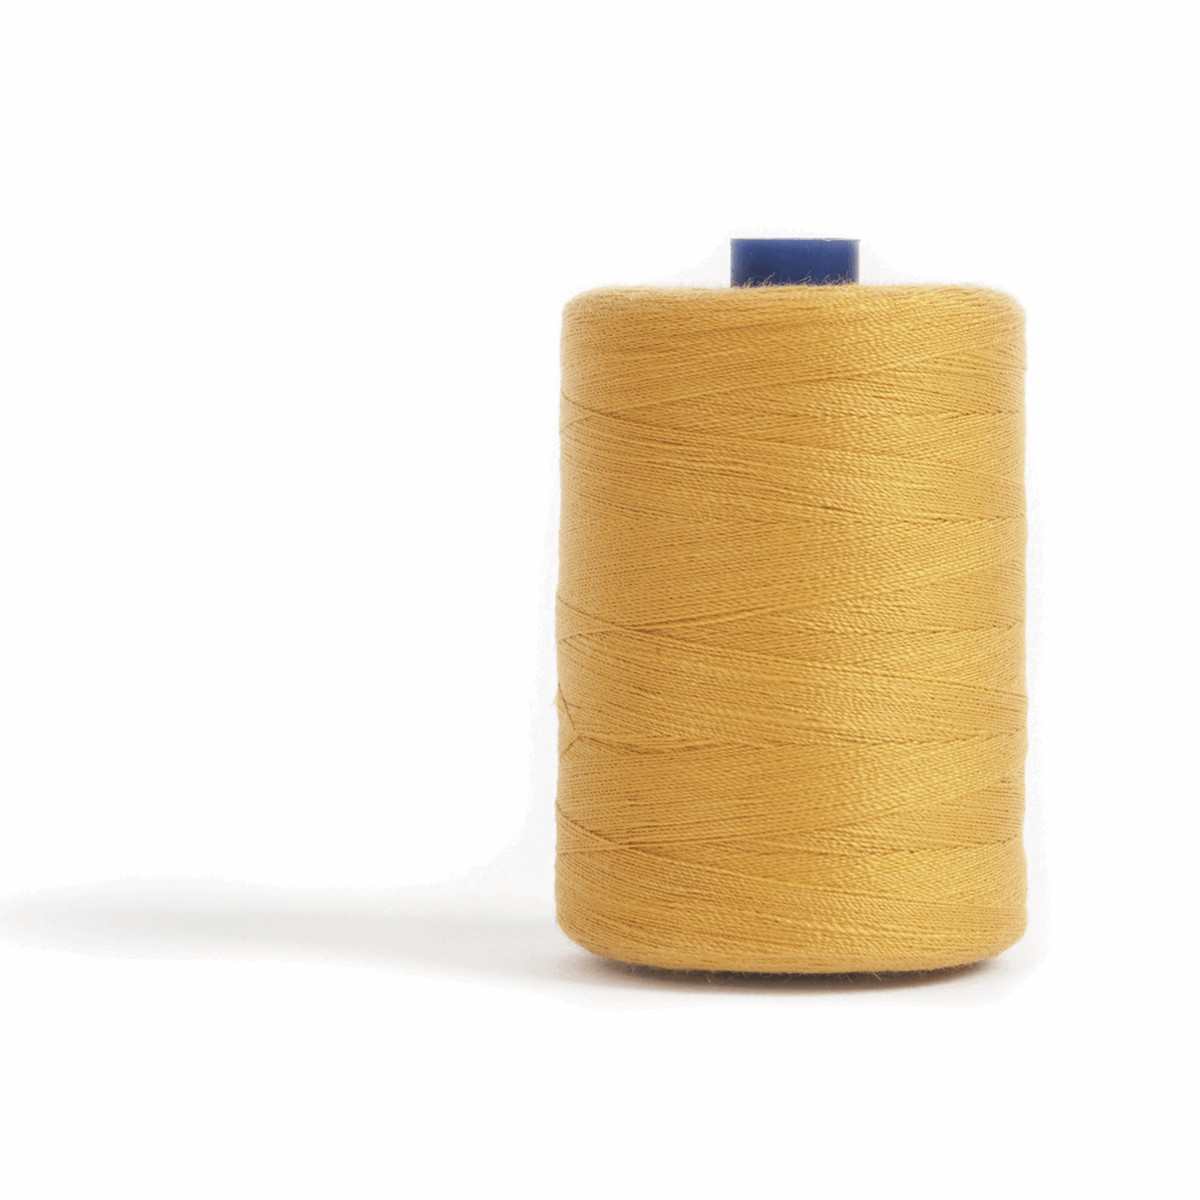 Thread 1000m Extra Large - Old Gold - for Sewing and Overlocking